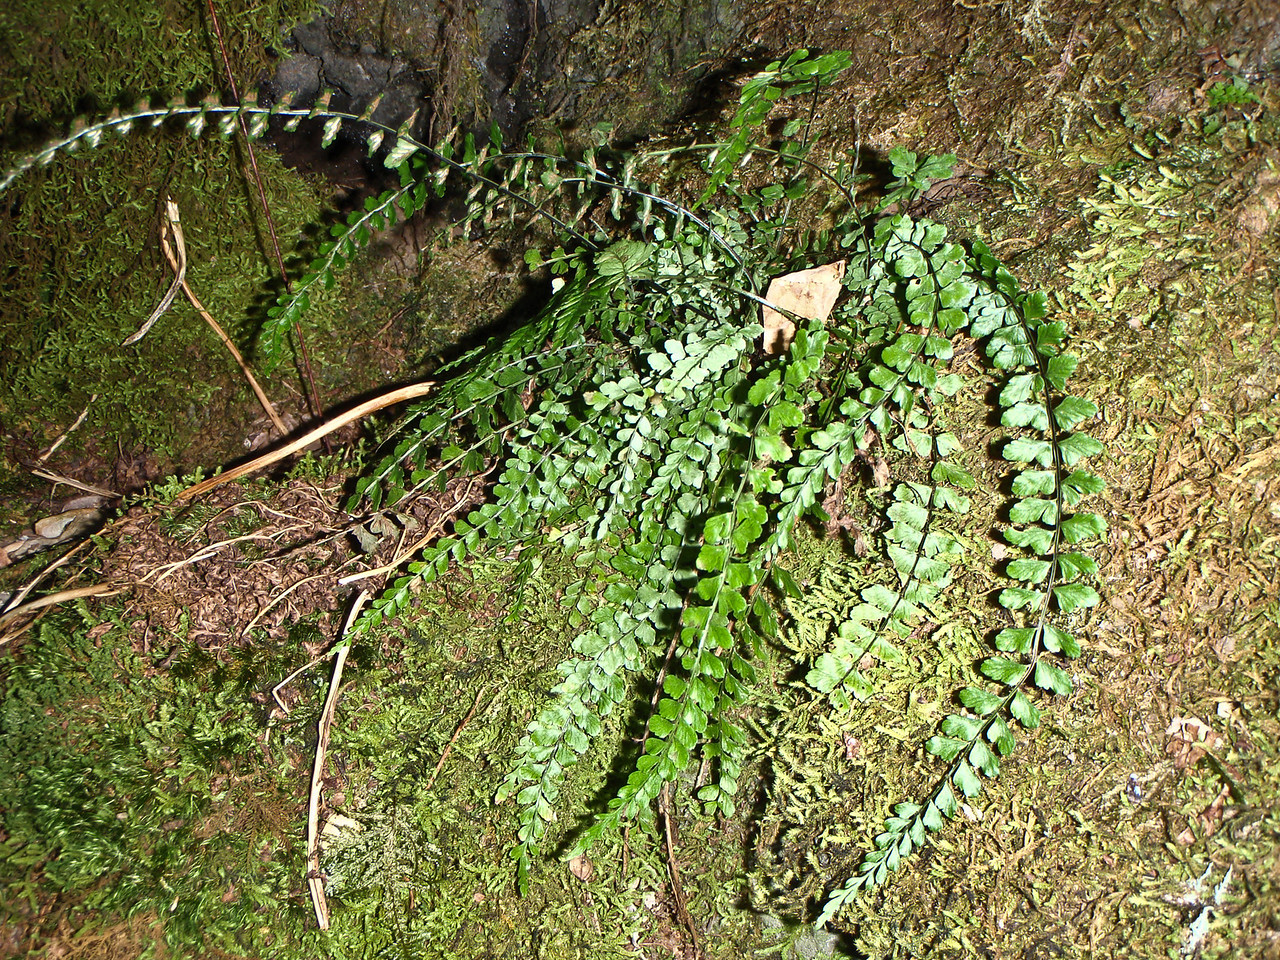 "Asplenium peruvianum var. insulare (East Maui)This image is licensed under the Creative Commons Attribution-NonCommercial 3.0 Unported license.  You may share and adapt this work, but only with attribution (""by Hank L. Oppenheimer"") and only for non-commercial purposes unless permission is obtained from the copyright-holder (contact webmaster@hear.org)."